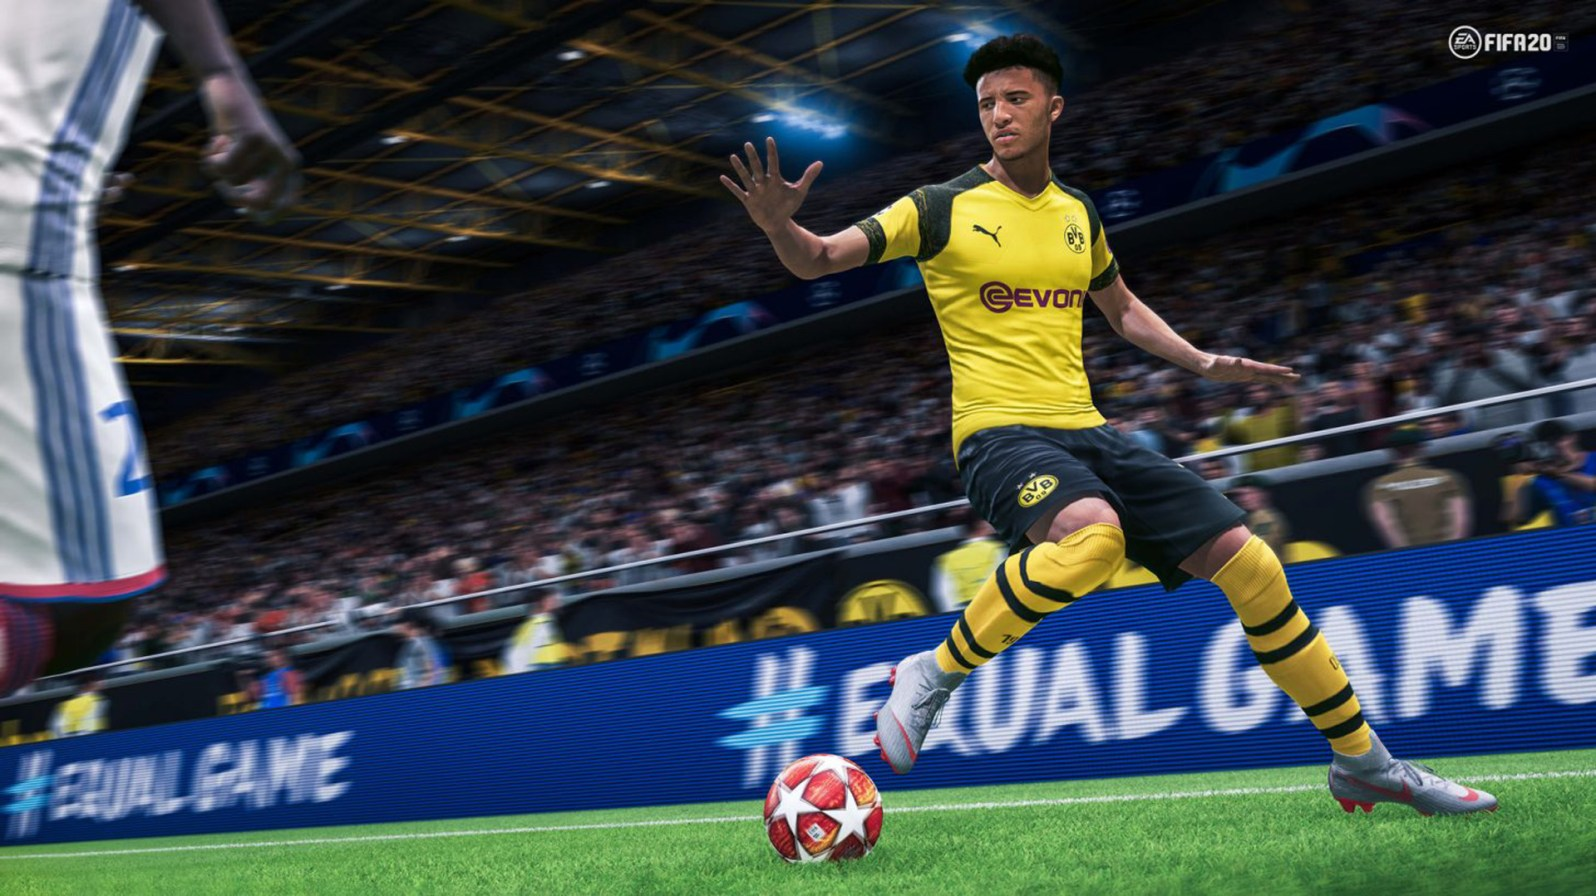 Quelle: Electronic Arts - FIFA 20